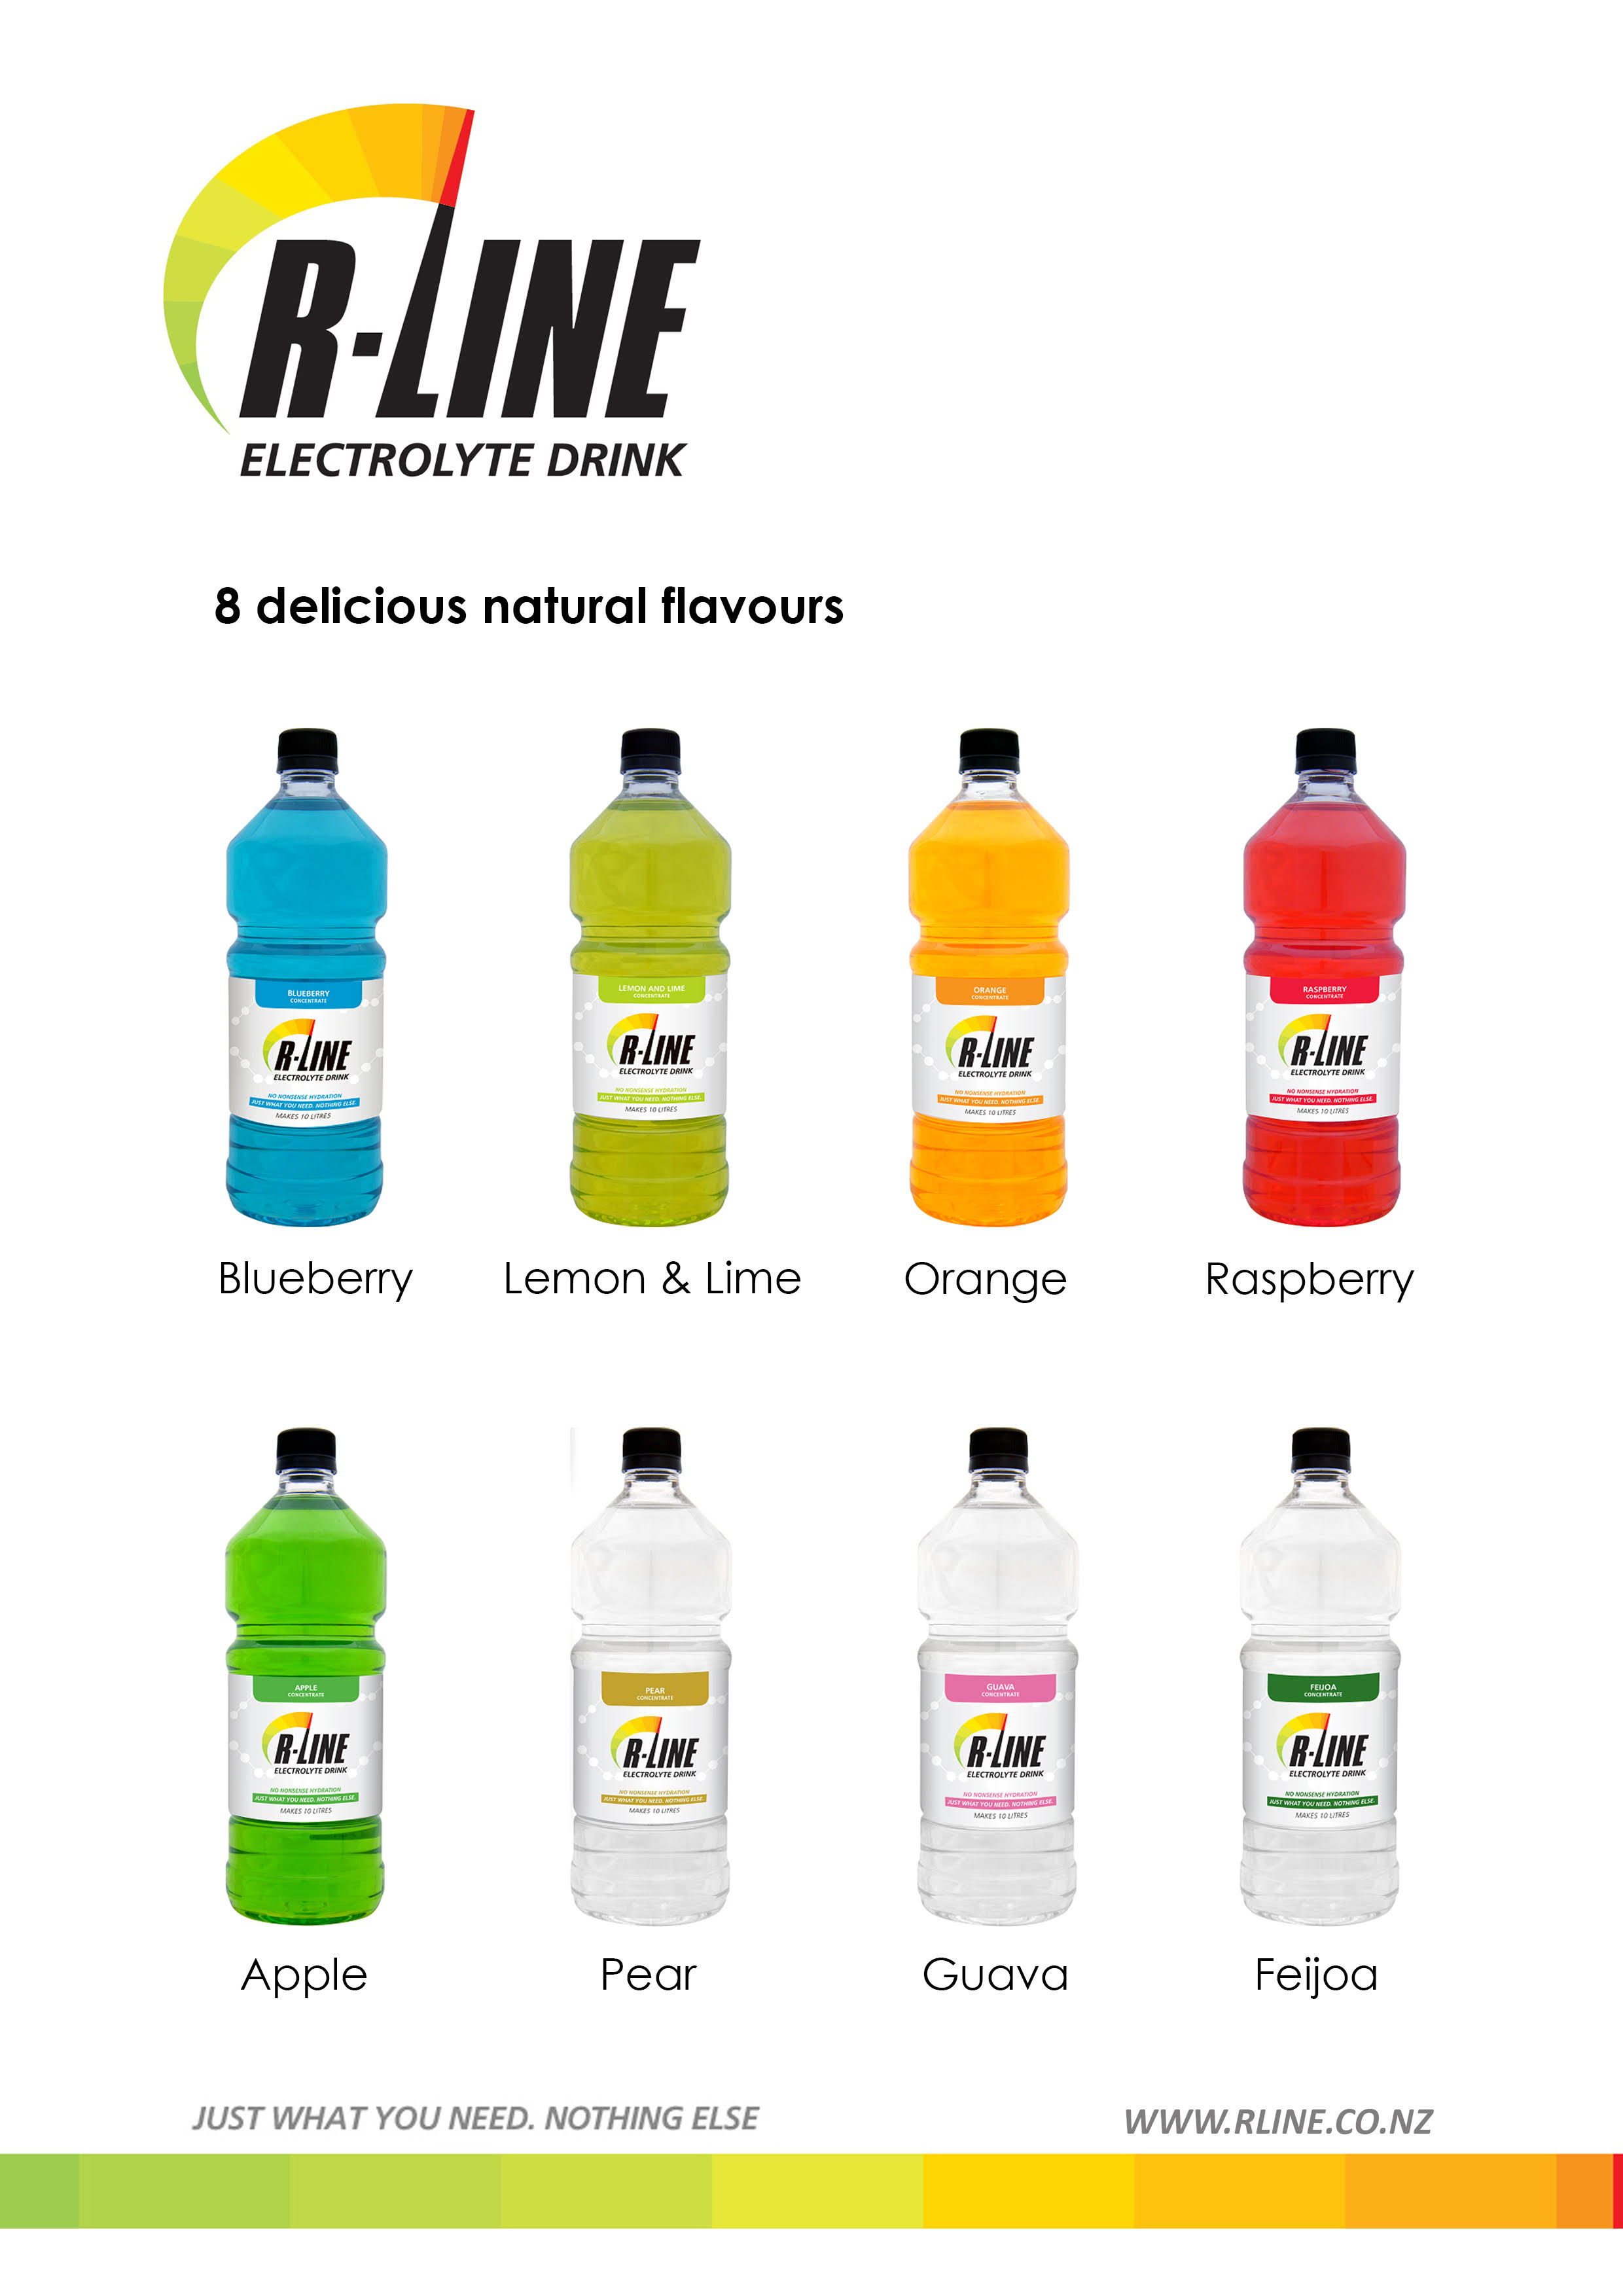 "R-Line - This electrolyte replacement will be available free at the start/finish line, if you would like some after your run.For 50% off Electrolyte Drink"" for bold part and underneath ""head over tohttps://rline.co.nz/and enter code EVENTDISCOUNT at check out *limit 3 per personThis is a concentrate- mix with water."